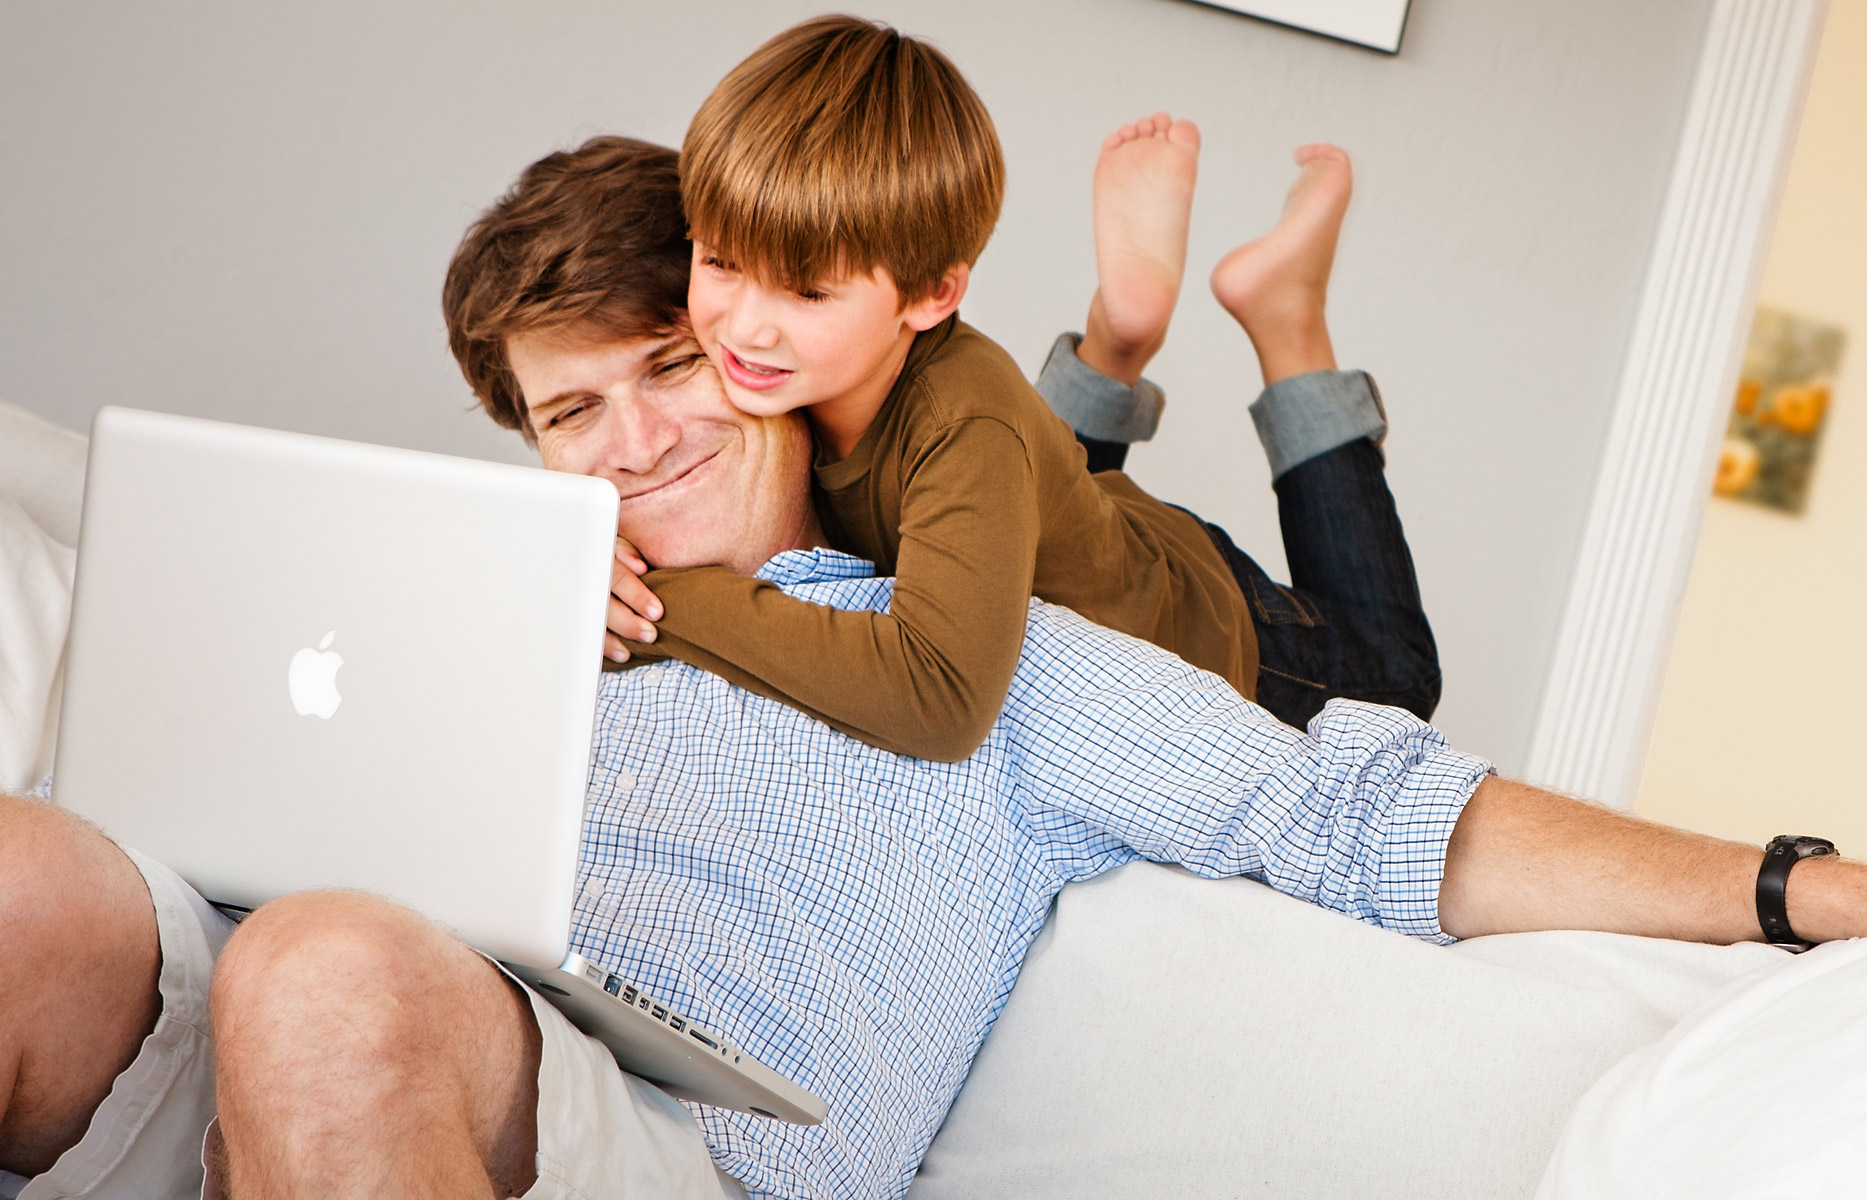 kiwi_crate_kid_and_dad_with_laptop_on_couch